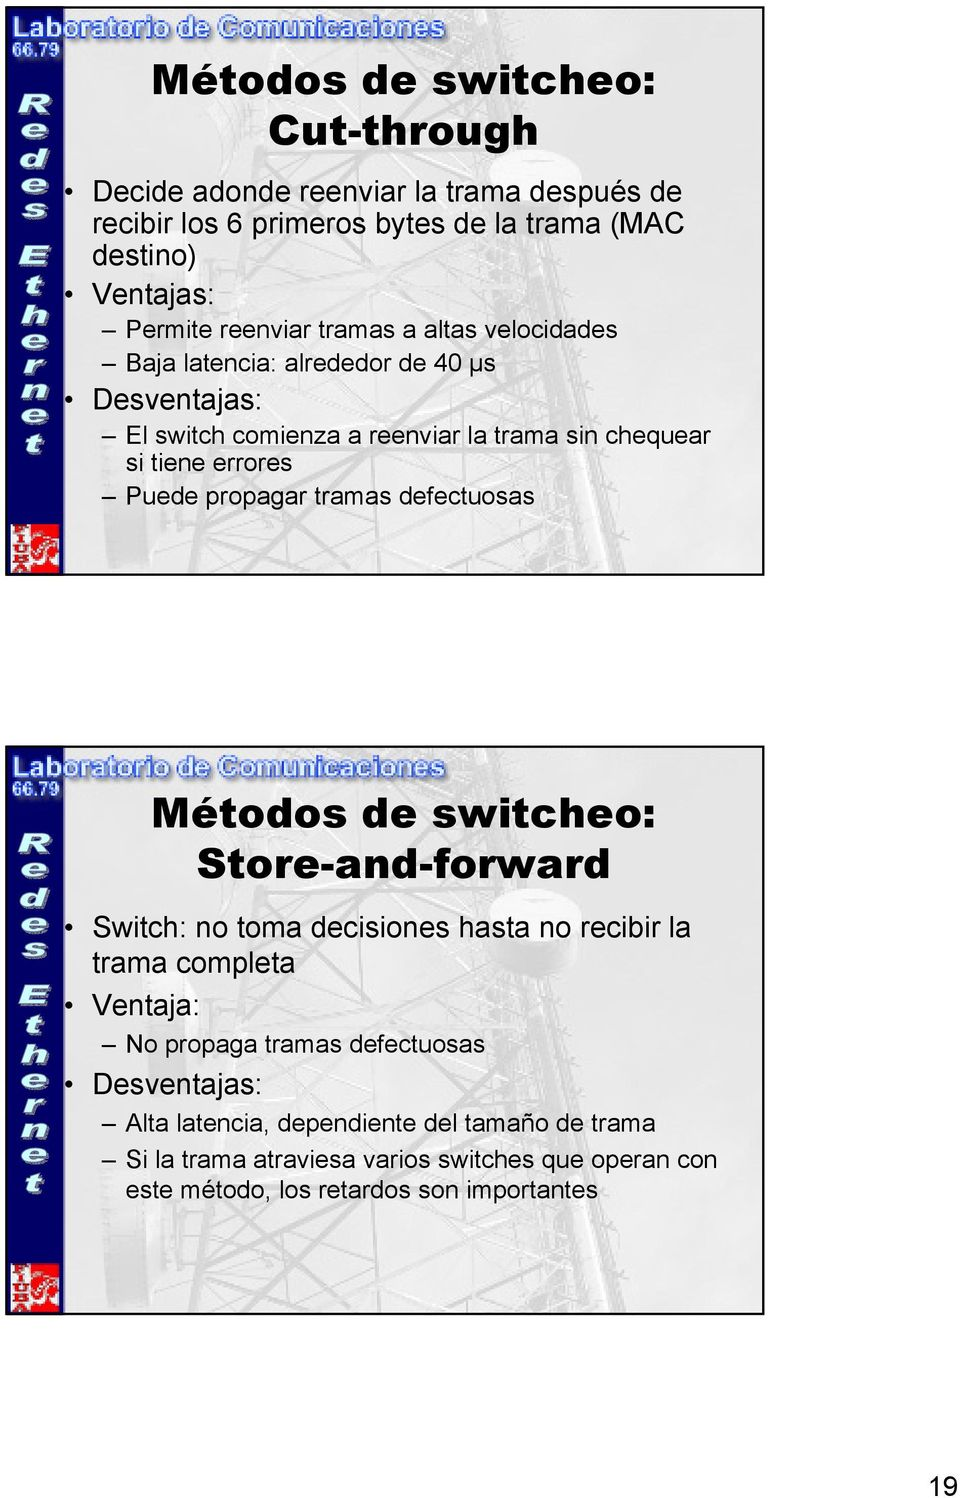 tramas defectuosas Métodos de switcheo: Store-and-forward Switch: no toma decisiones hasta no recibir la trama completa Ventaja: No propaga tramas